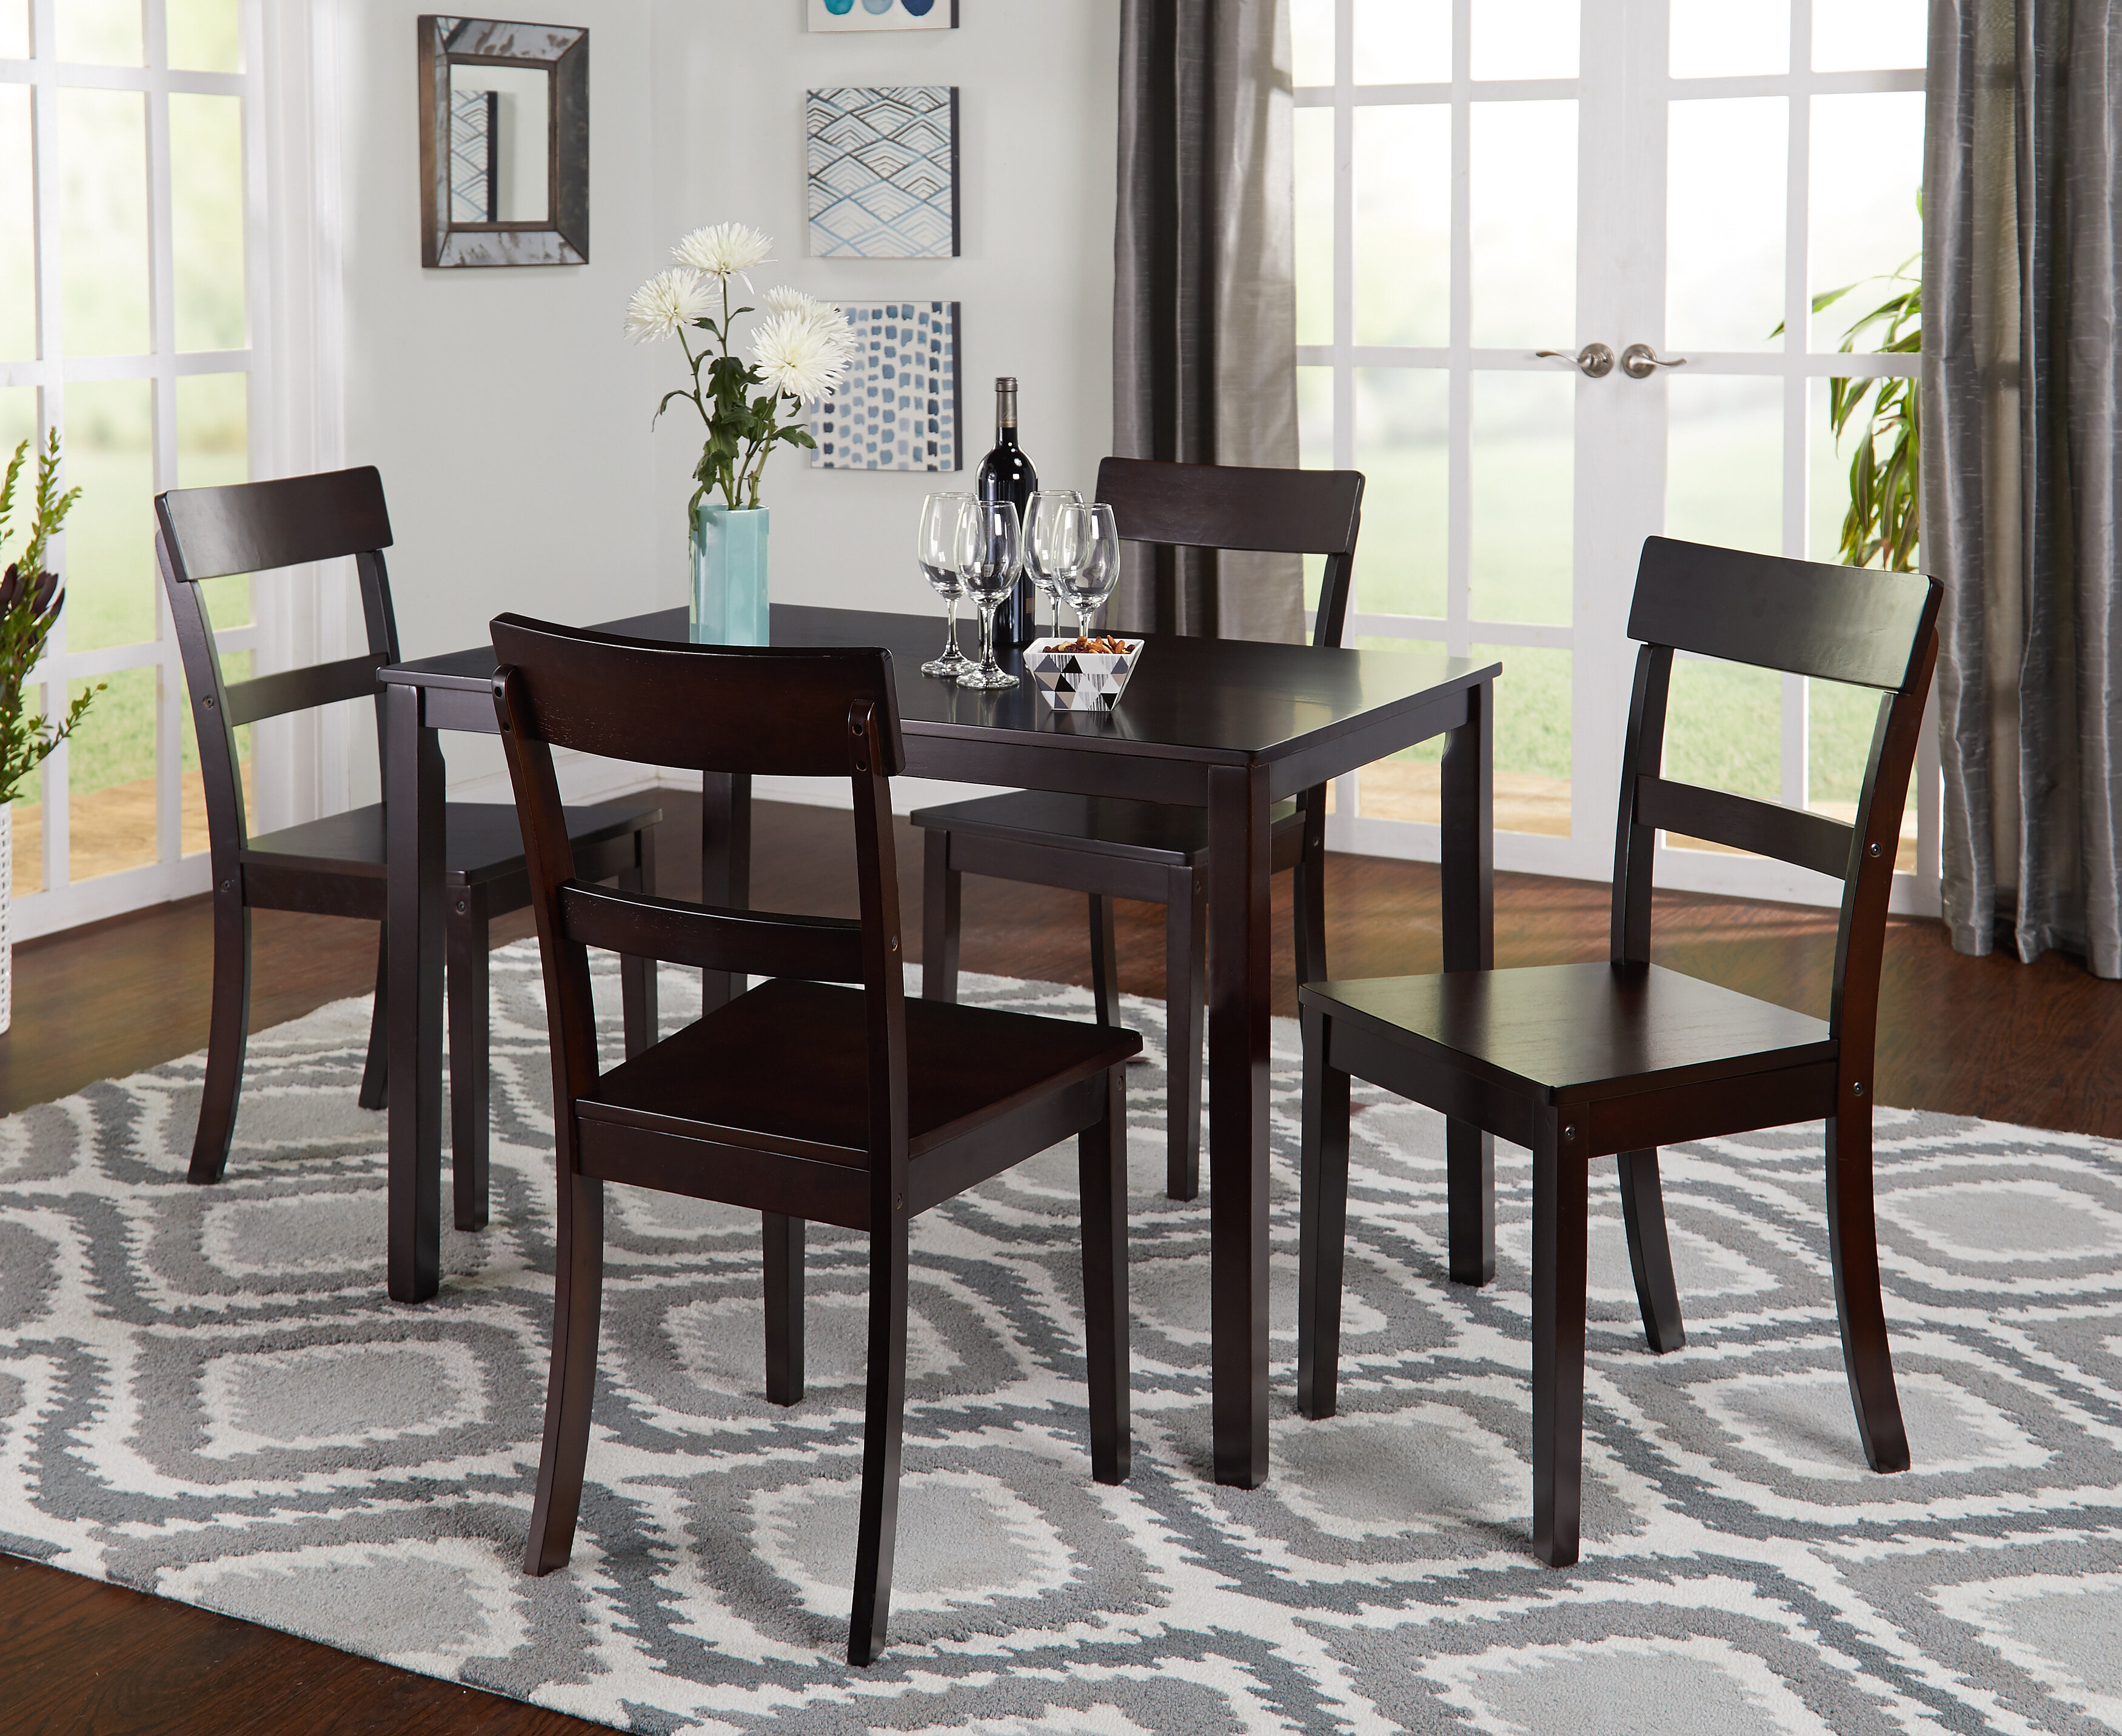 Solid Wood Kitchen & Dining Room Sets & Tables You'll Love in 2021